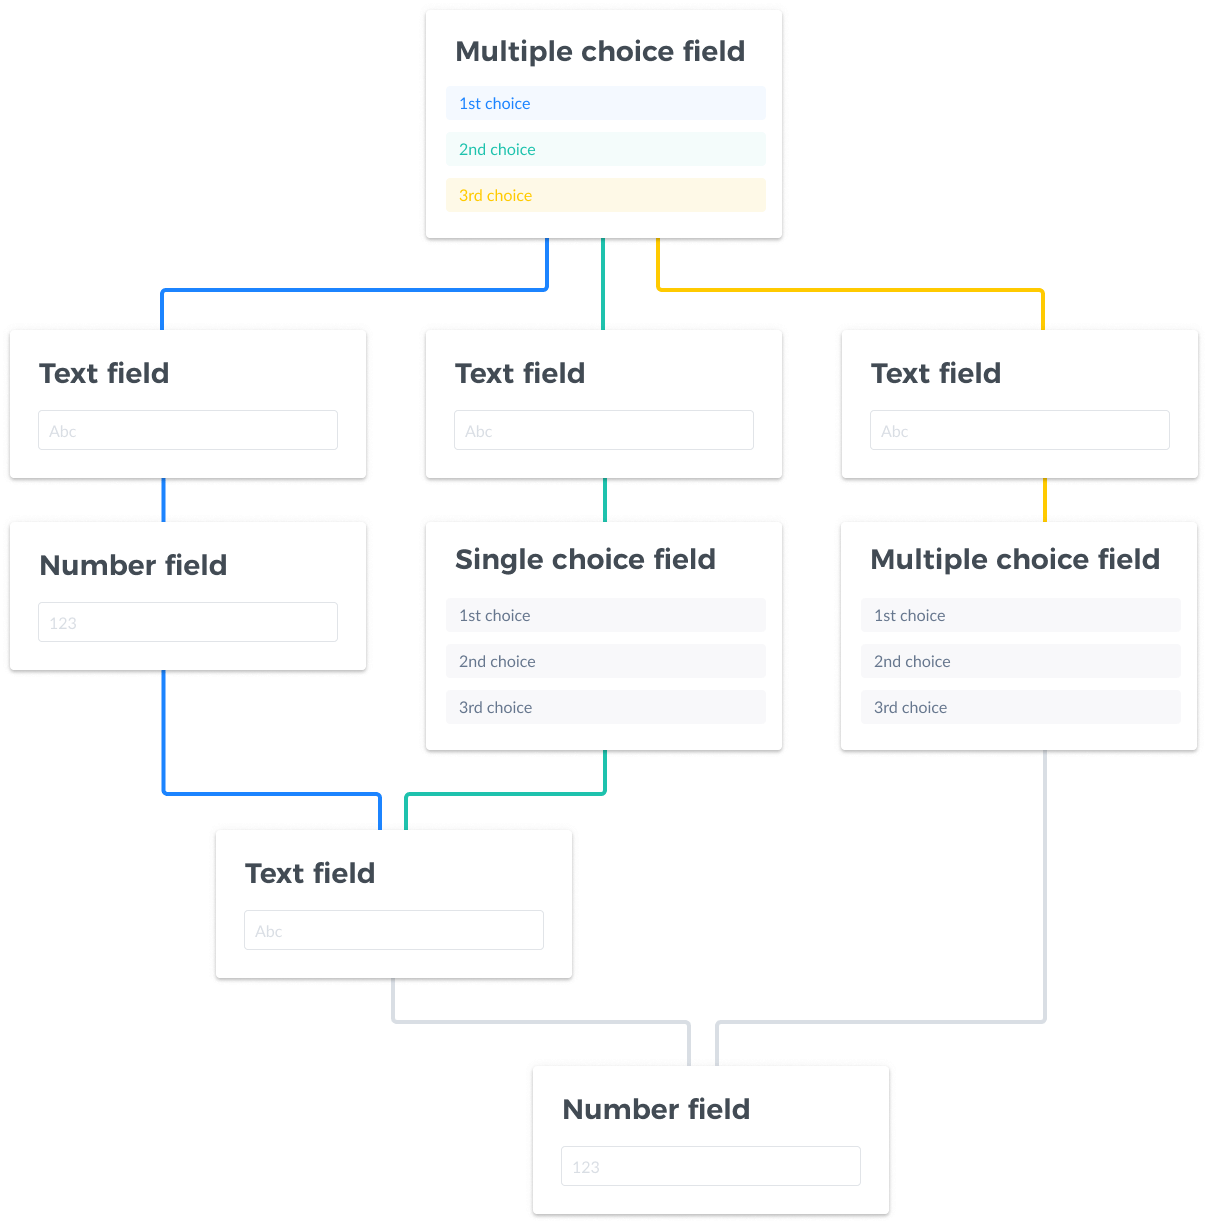 Multiple fields being connected via branching logic